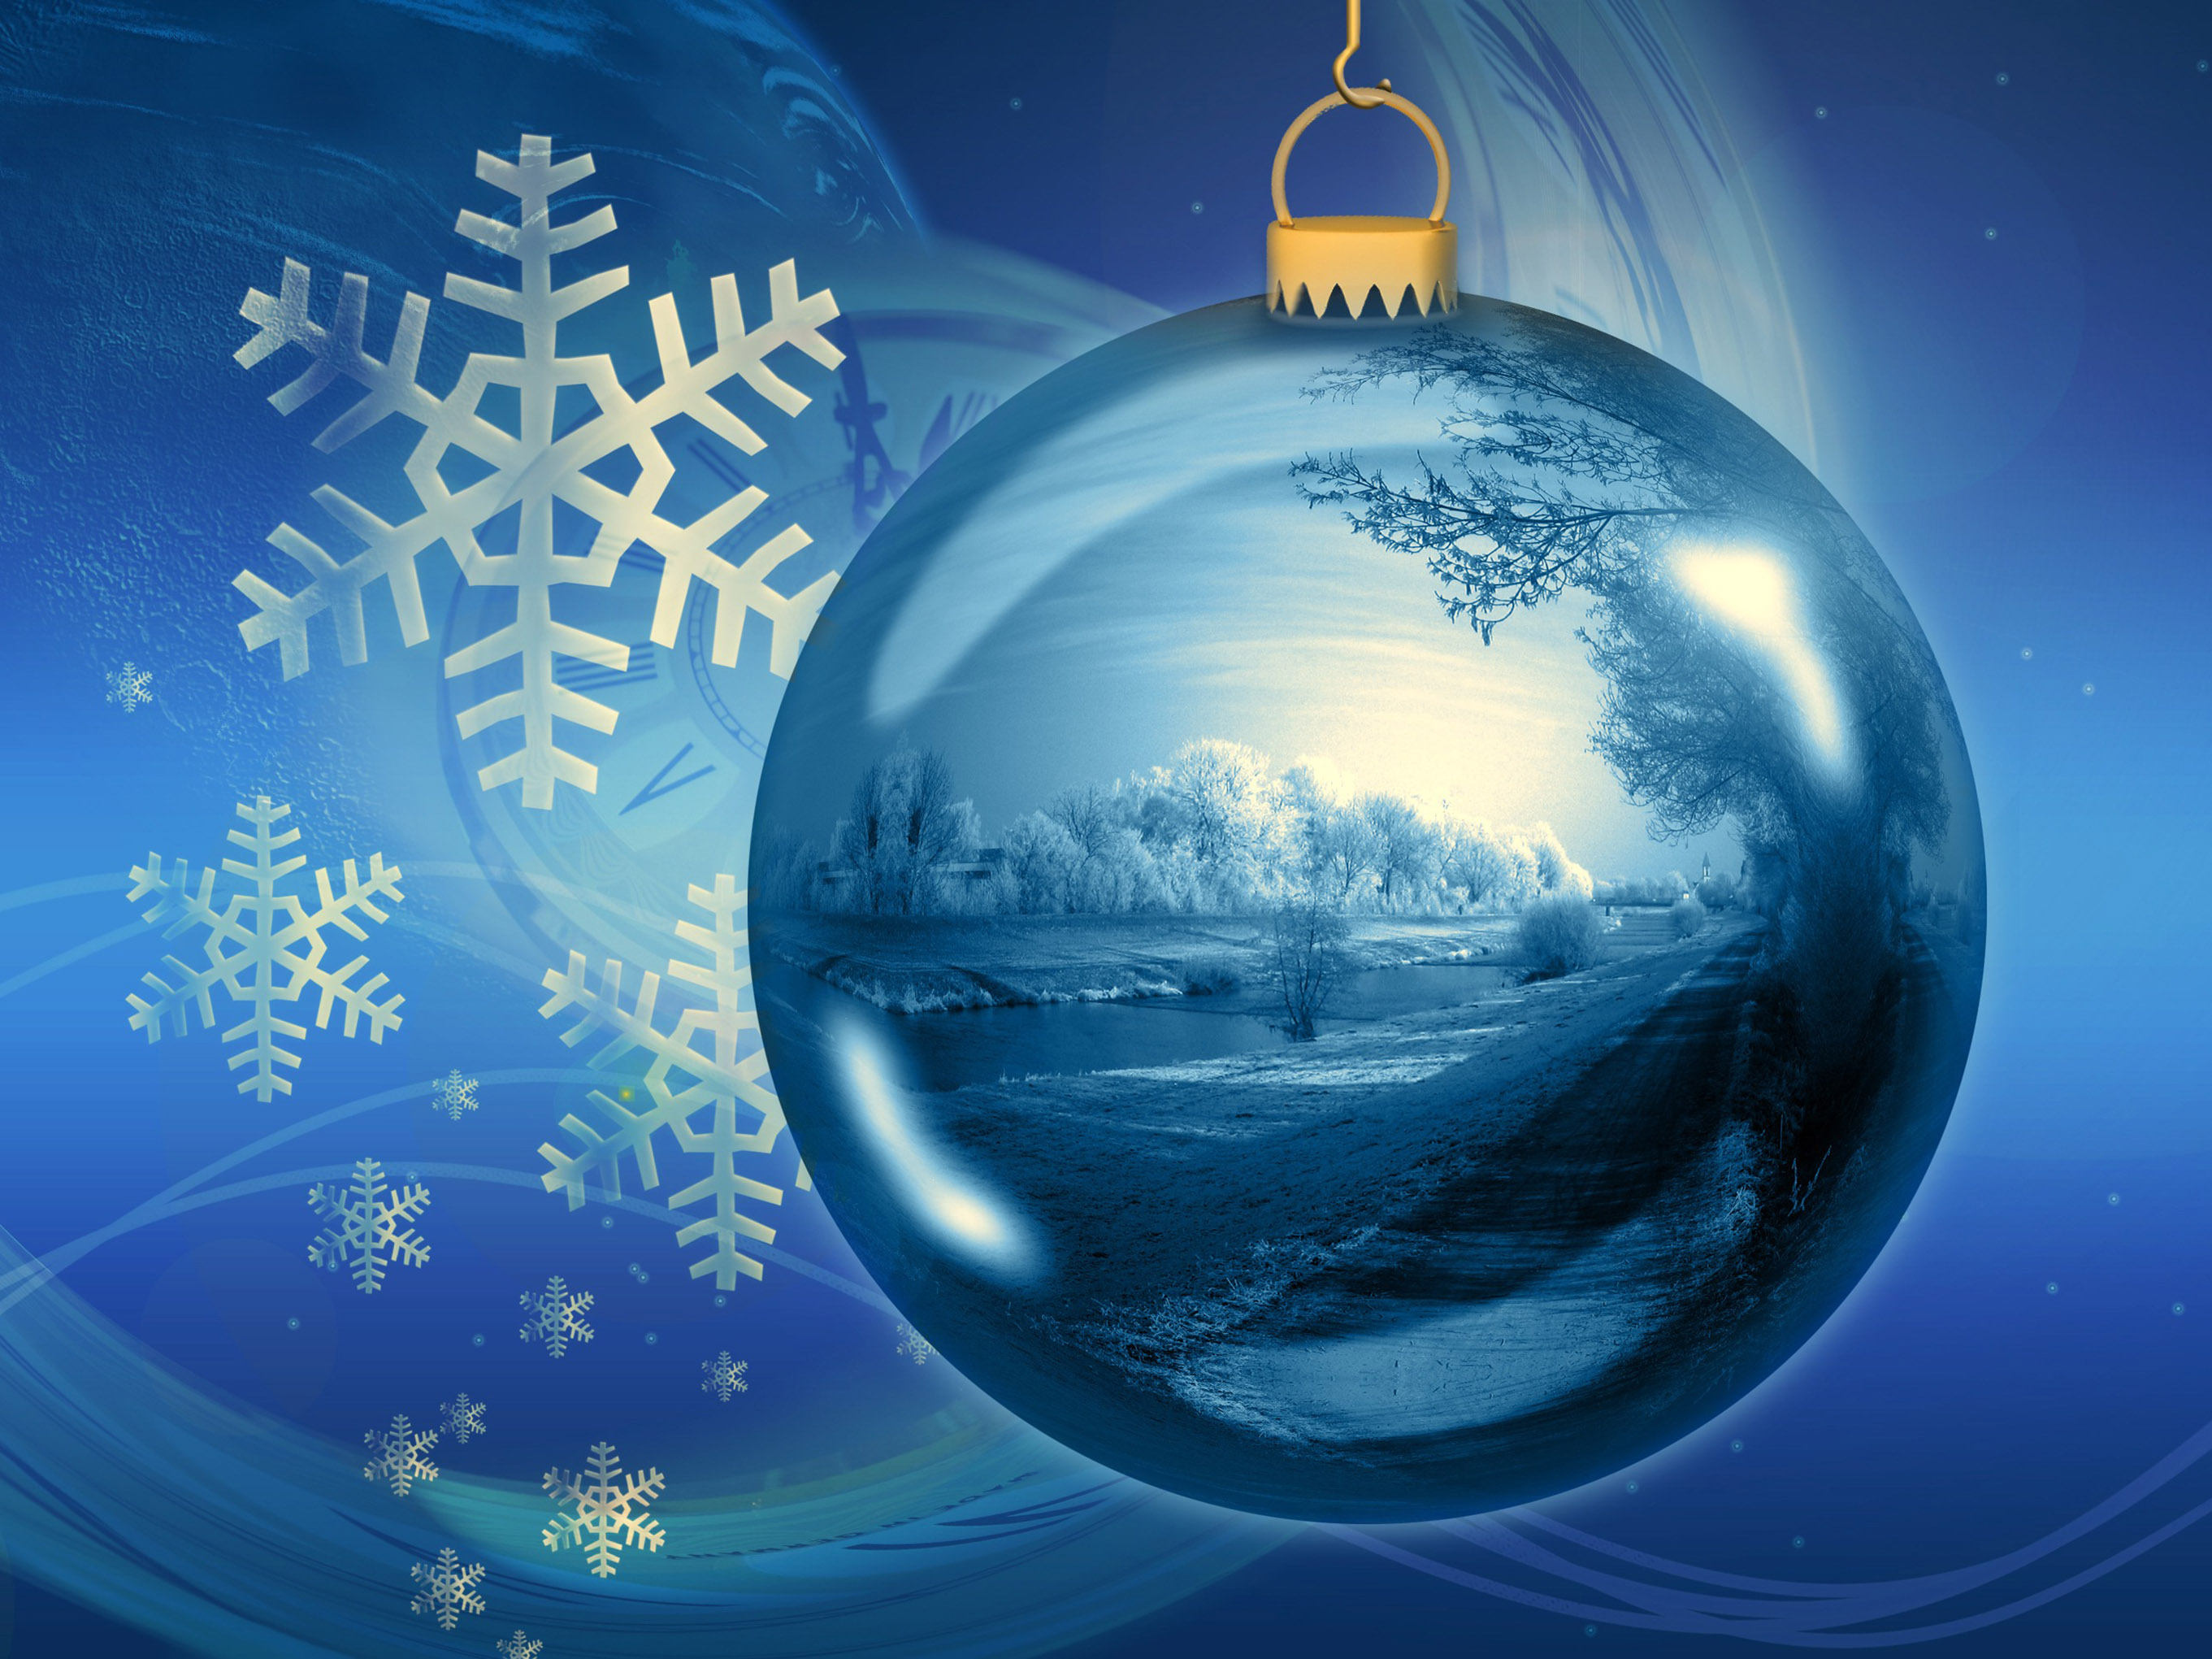 blue christmas balls wallpapers high quality download free - Blue Christmas Balls